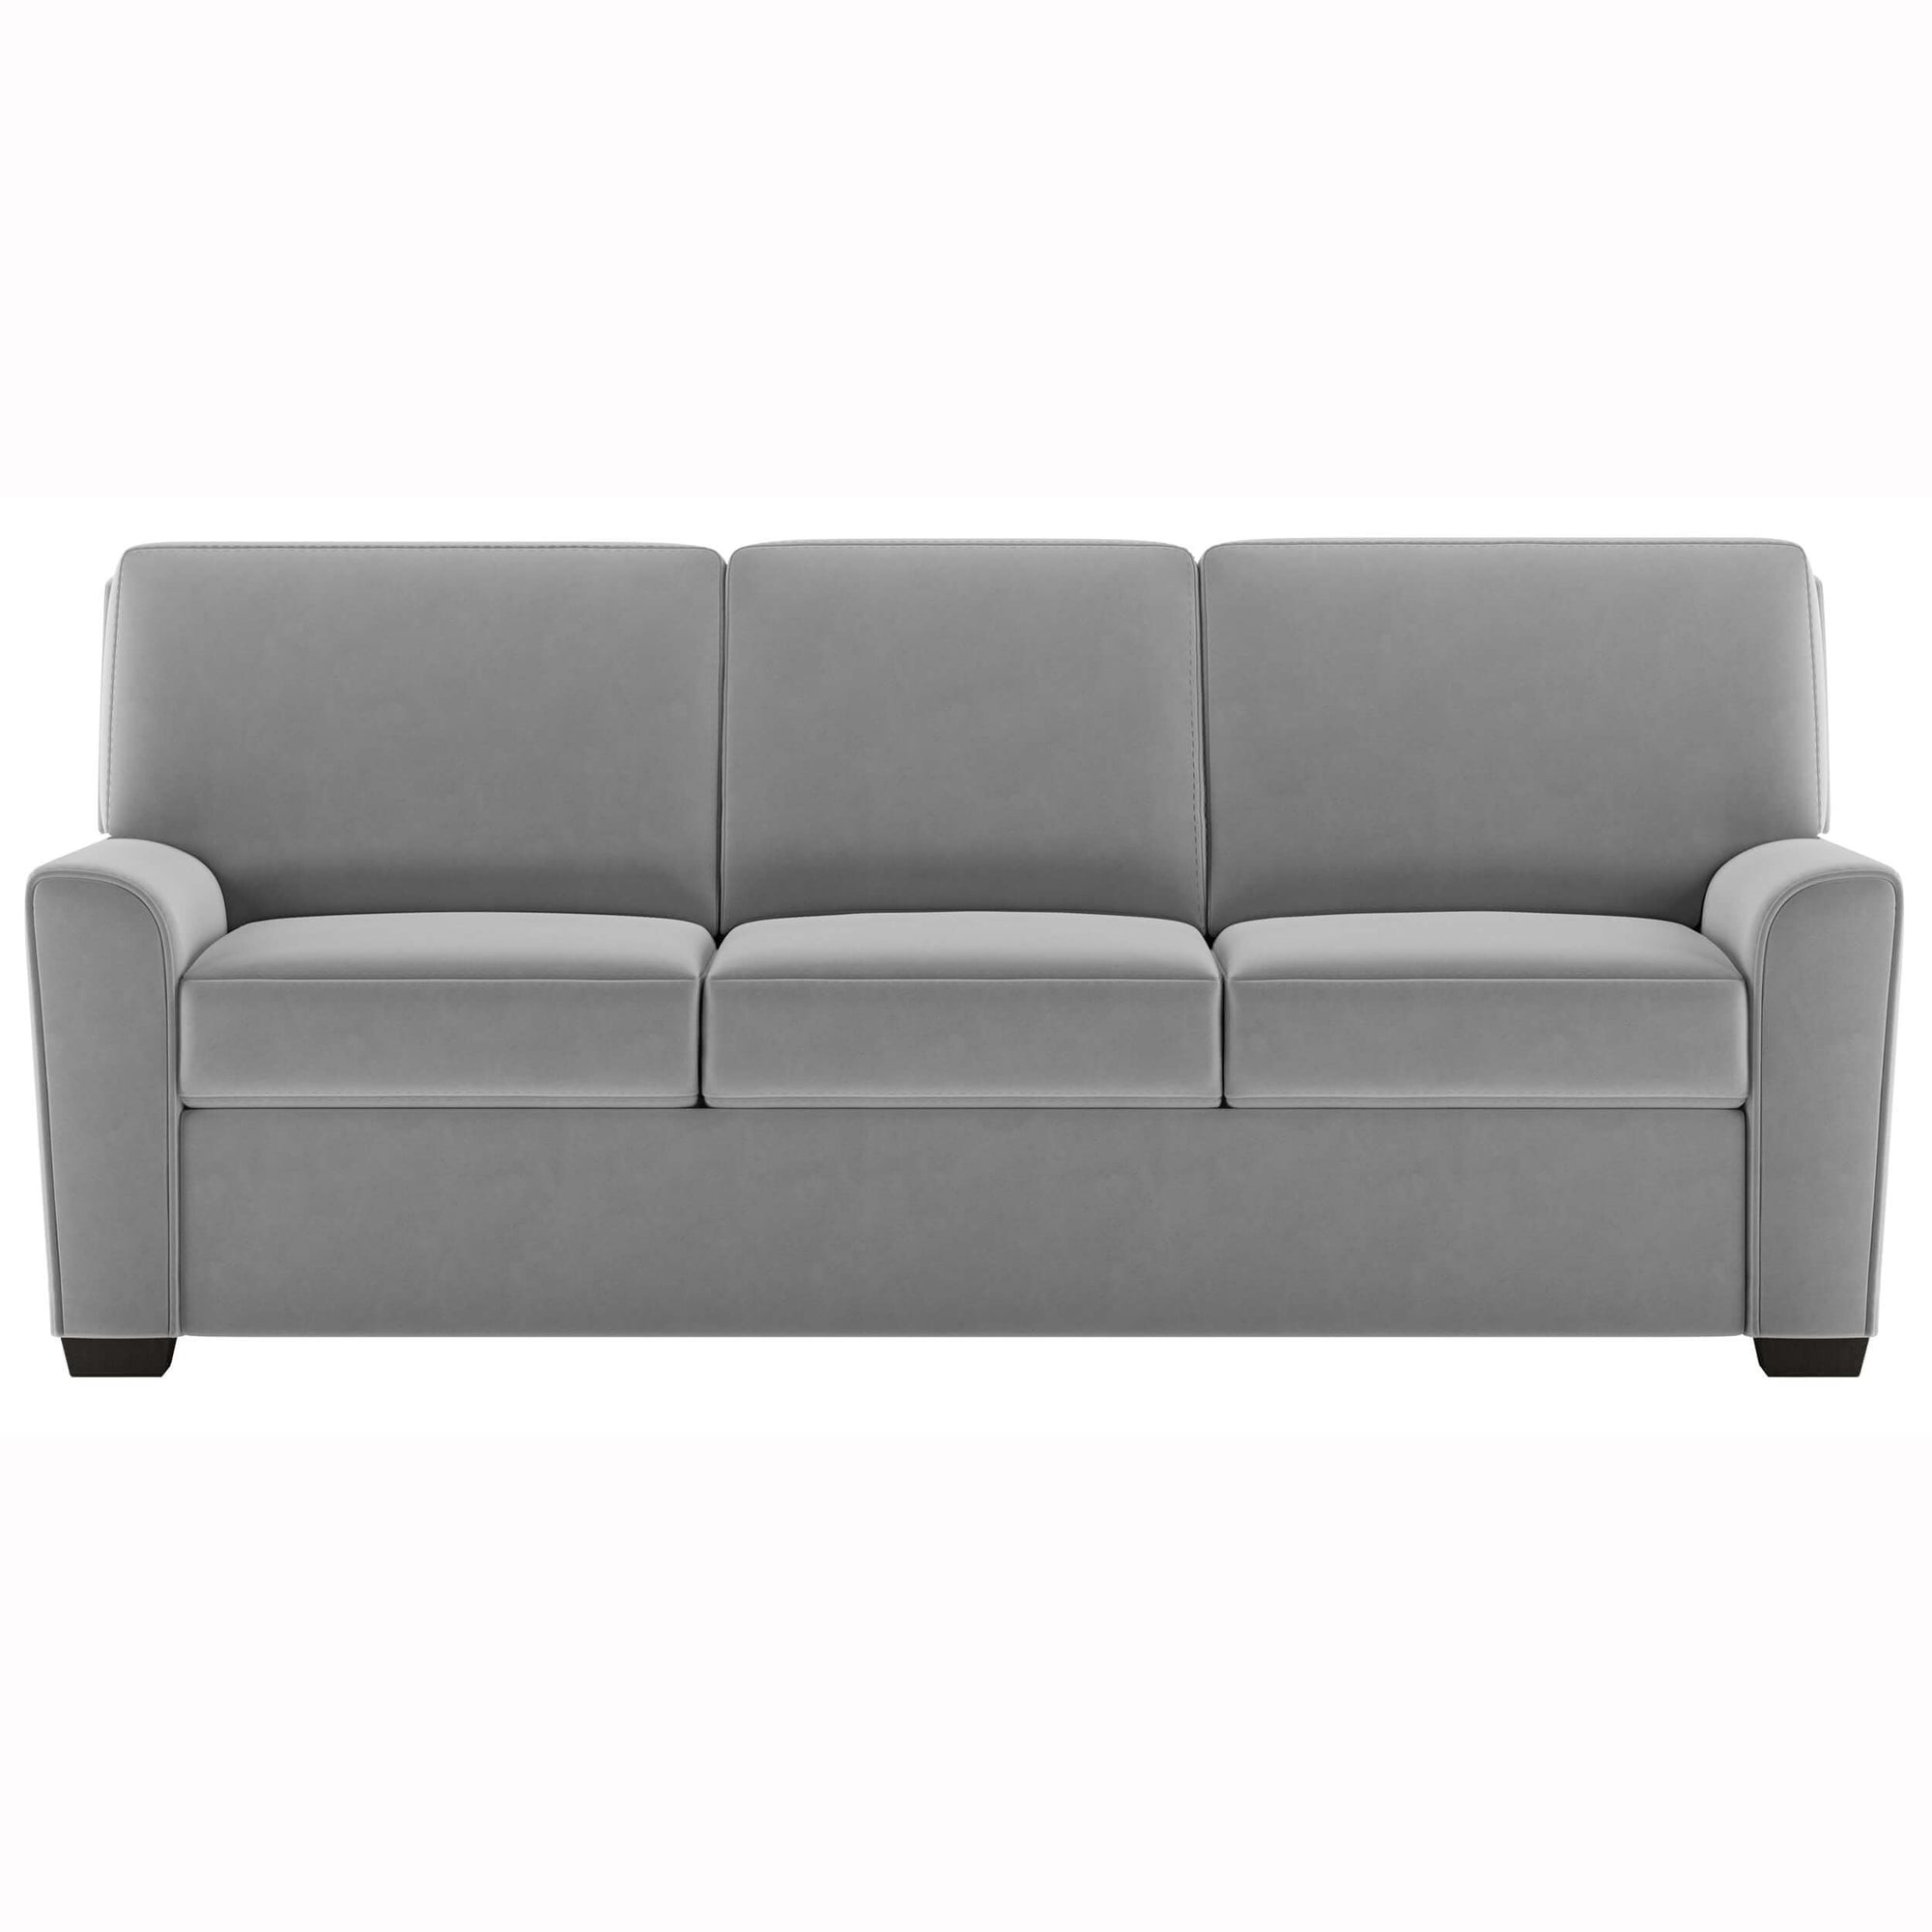 Super American Leather Klein Queen Sleeper Sofa Toray Ultrasuede French Gray Unemploymentrelief Wooden Chair Designs For Living Room Unemploymentrelieforg